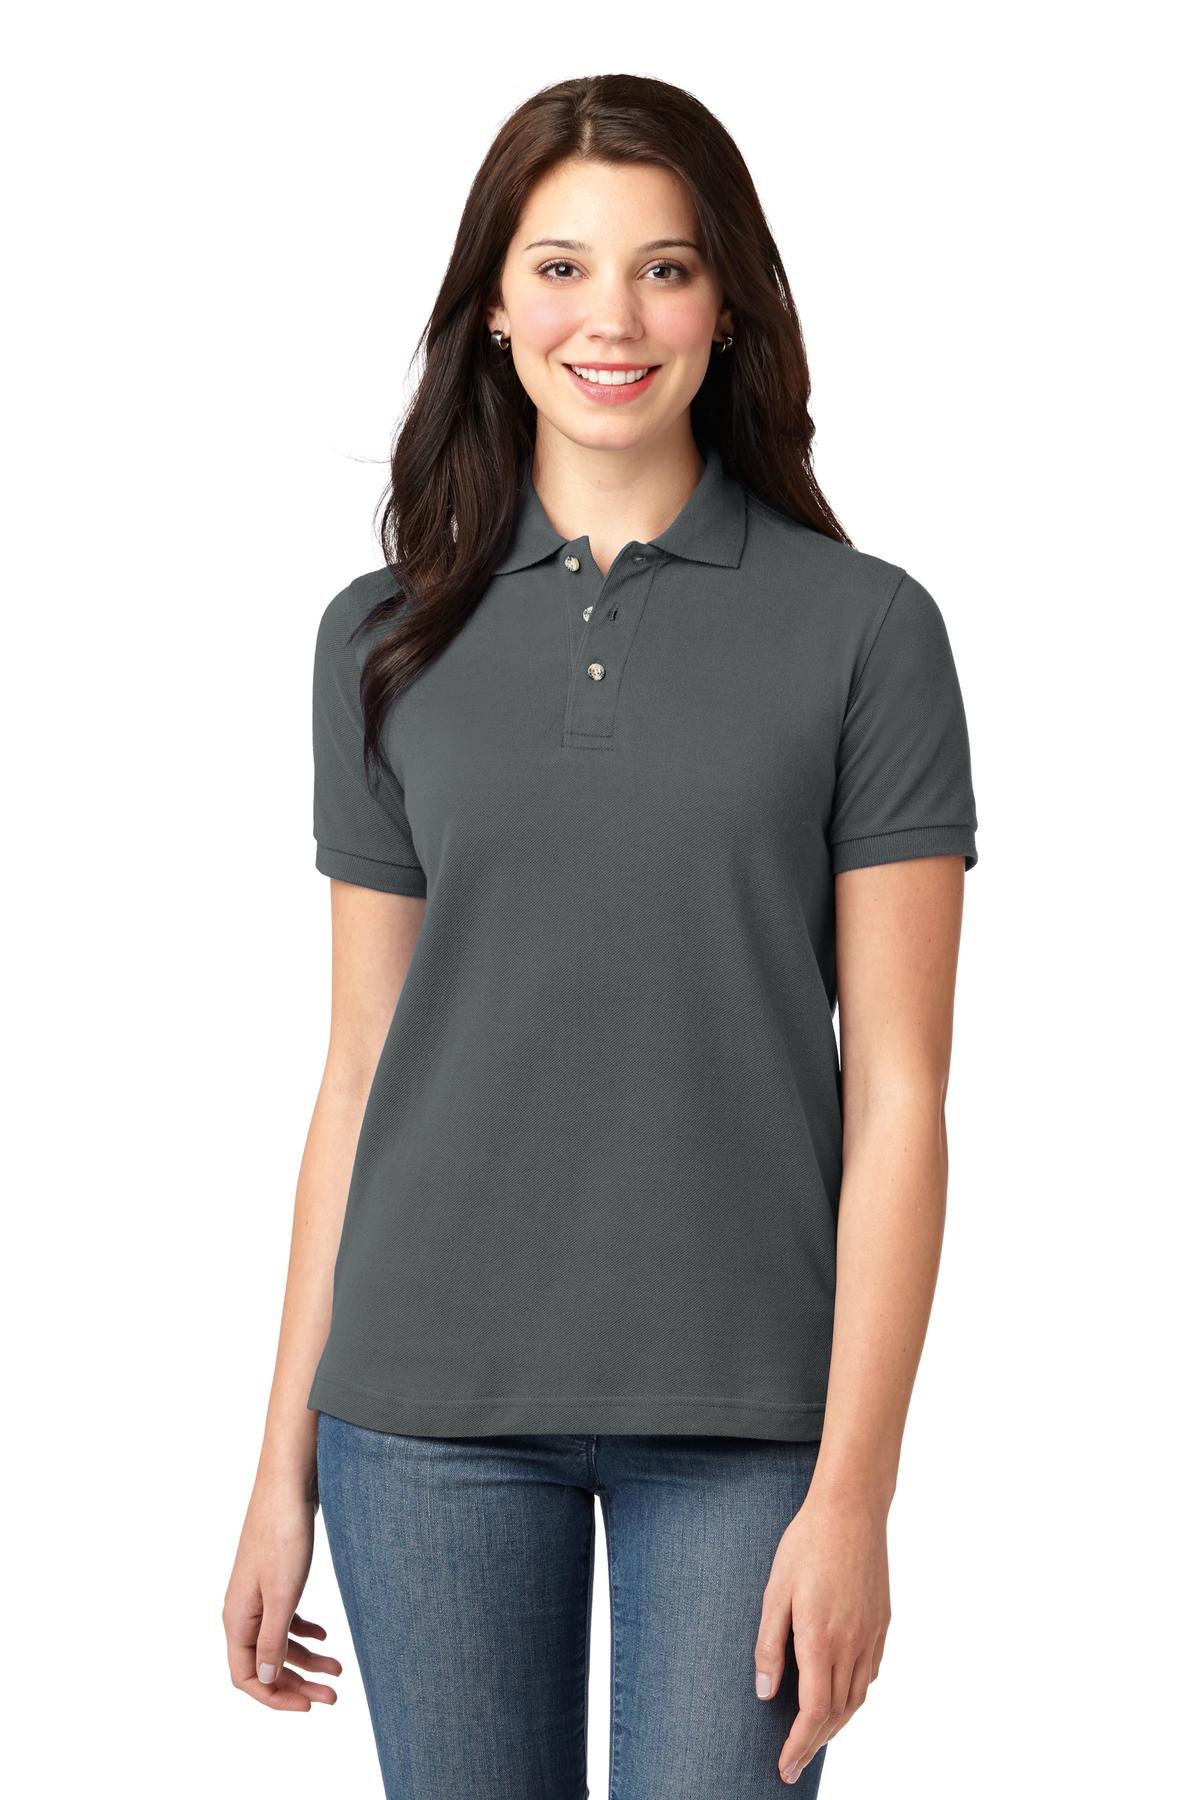 Port Authority ®  Ladies Heavyweight Cotton Pique Polo.  L420 - Steel Grey